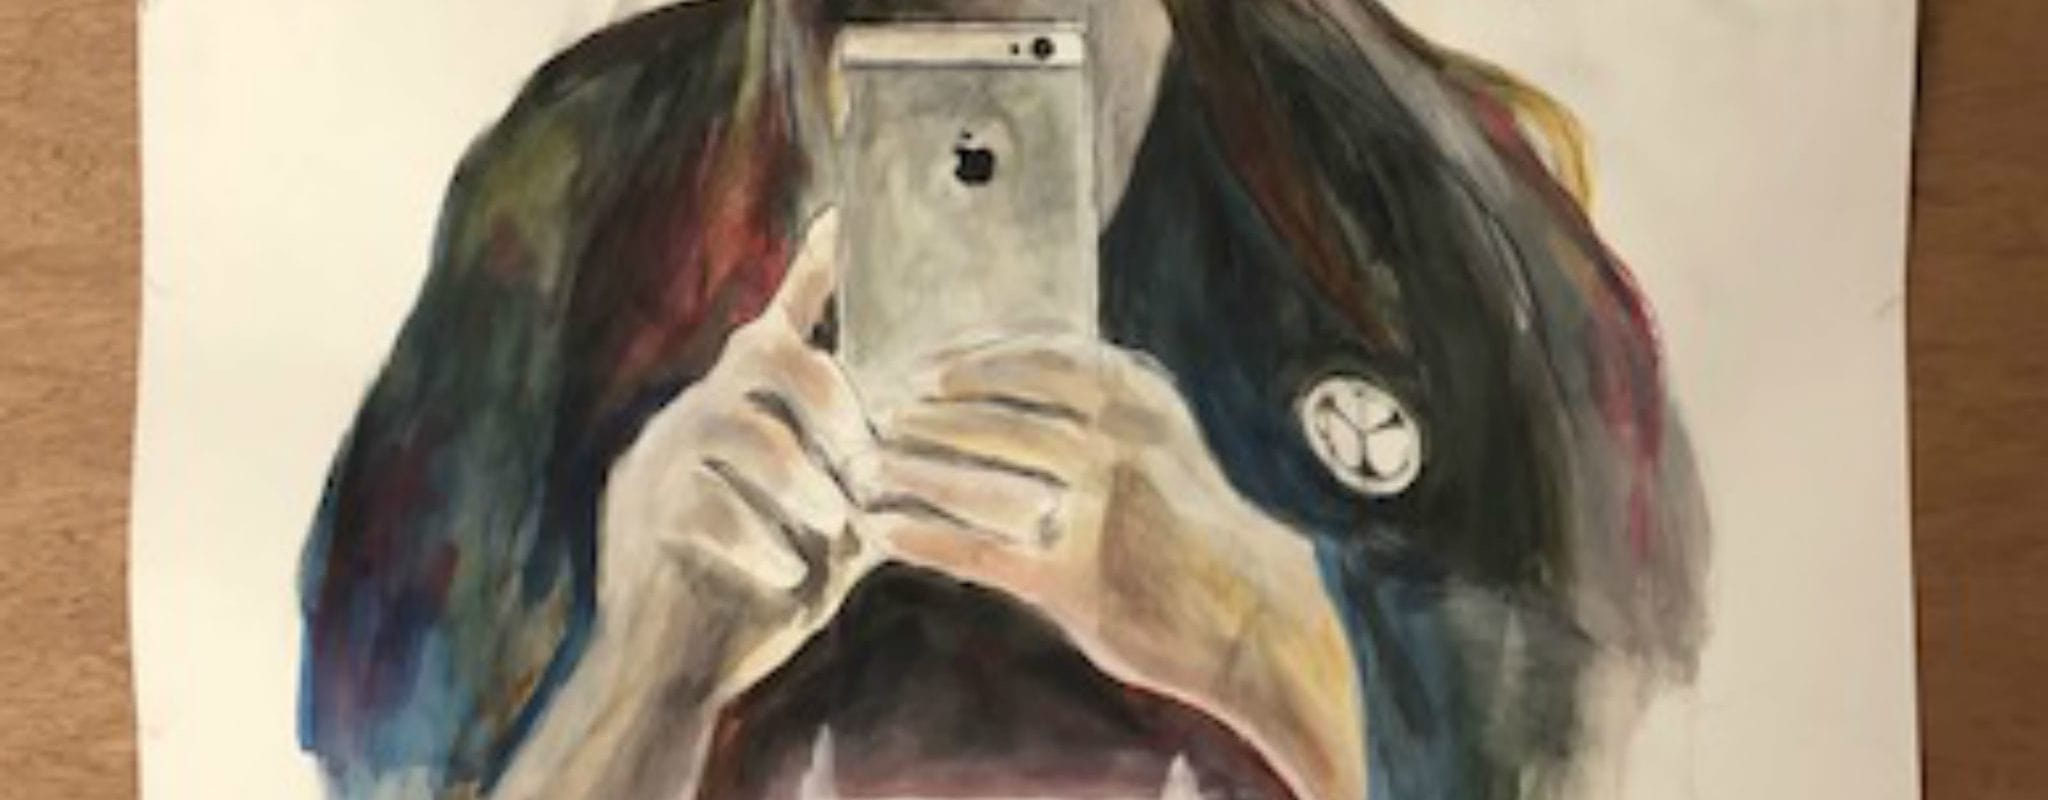 Tire-moi le portrait : l'art contemporain, le selfie et le narcissisme au Séchoir de Mulhouse